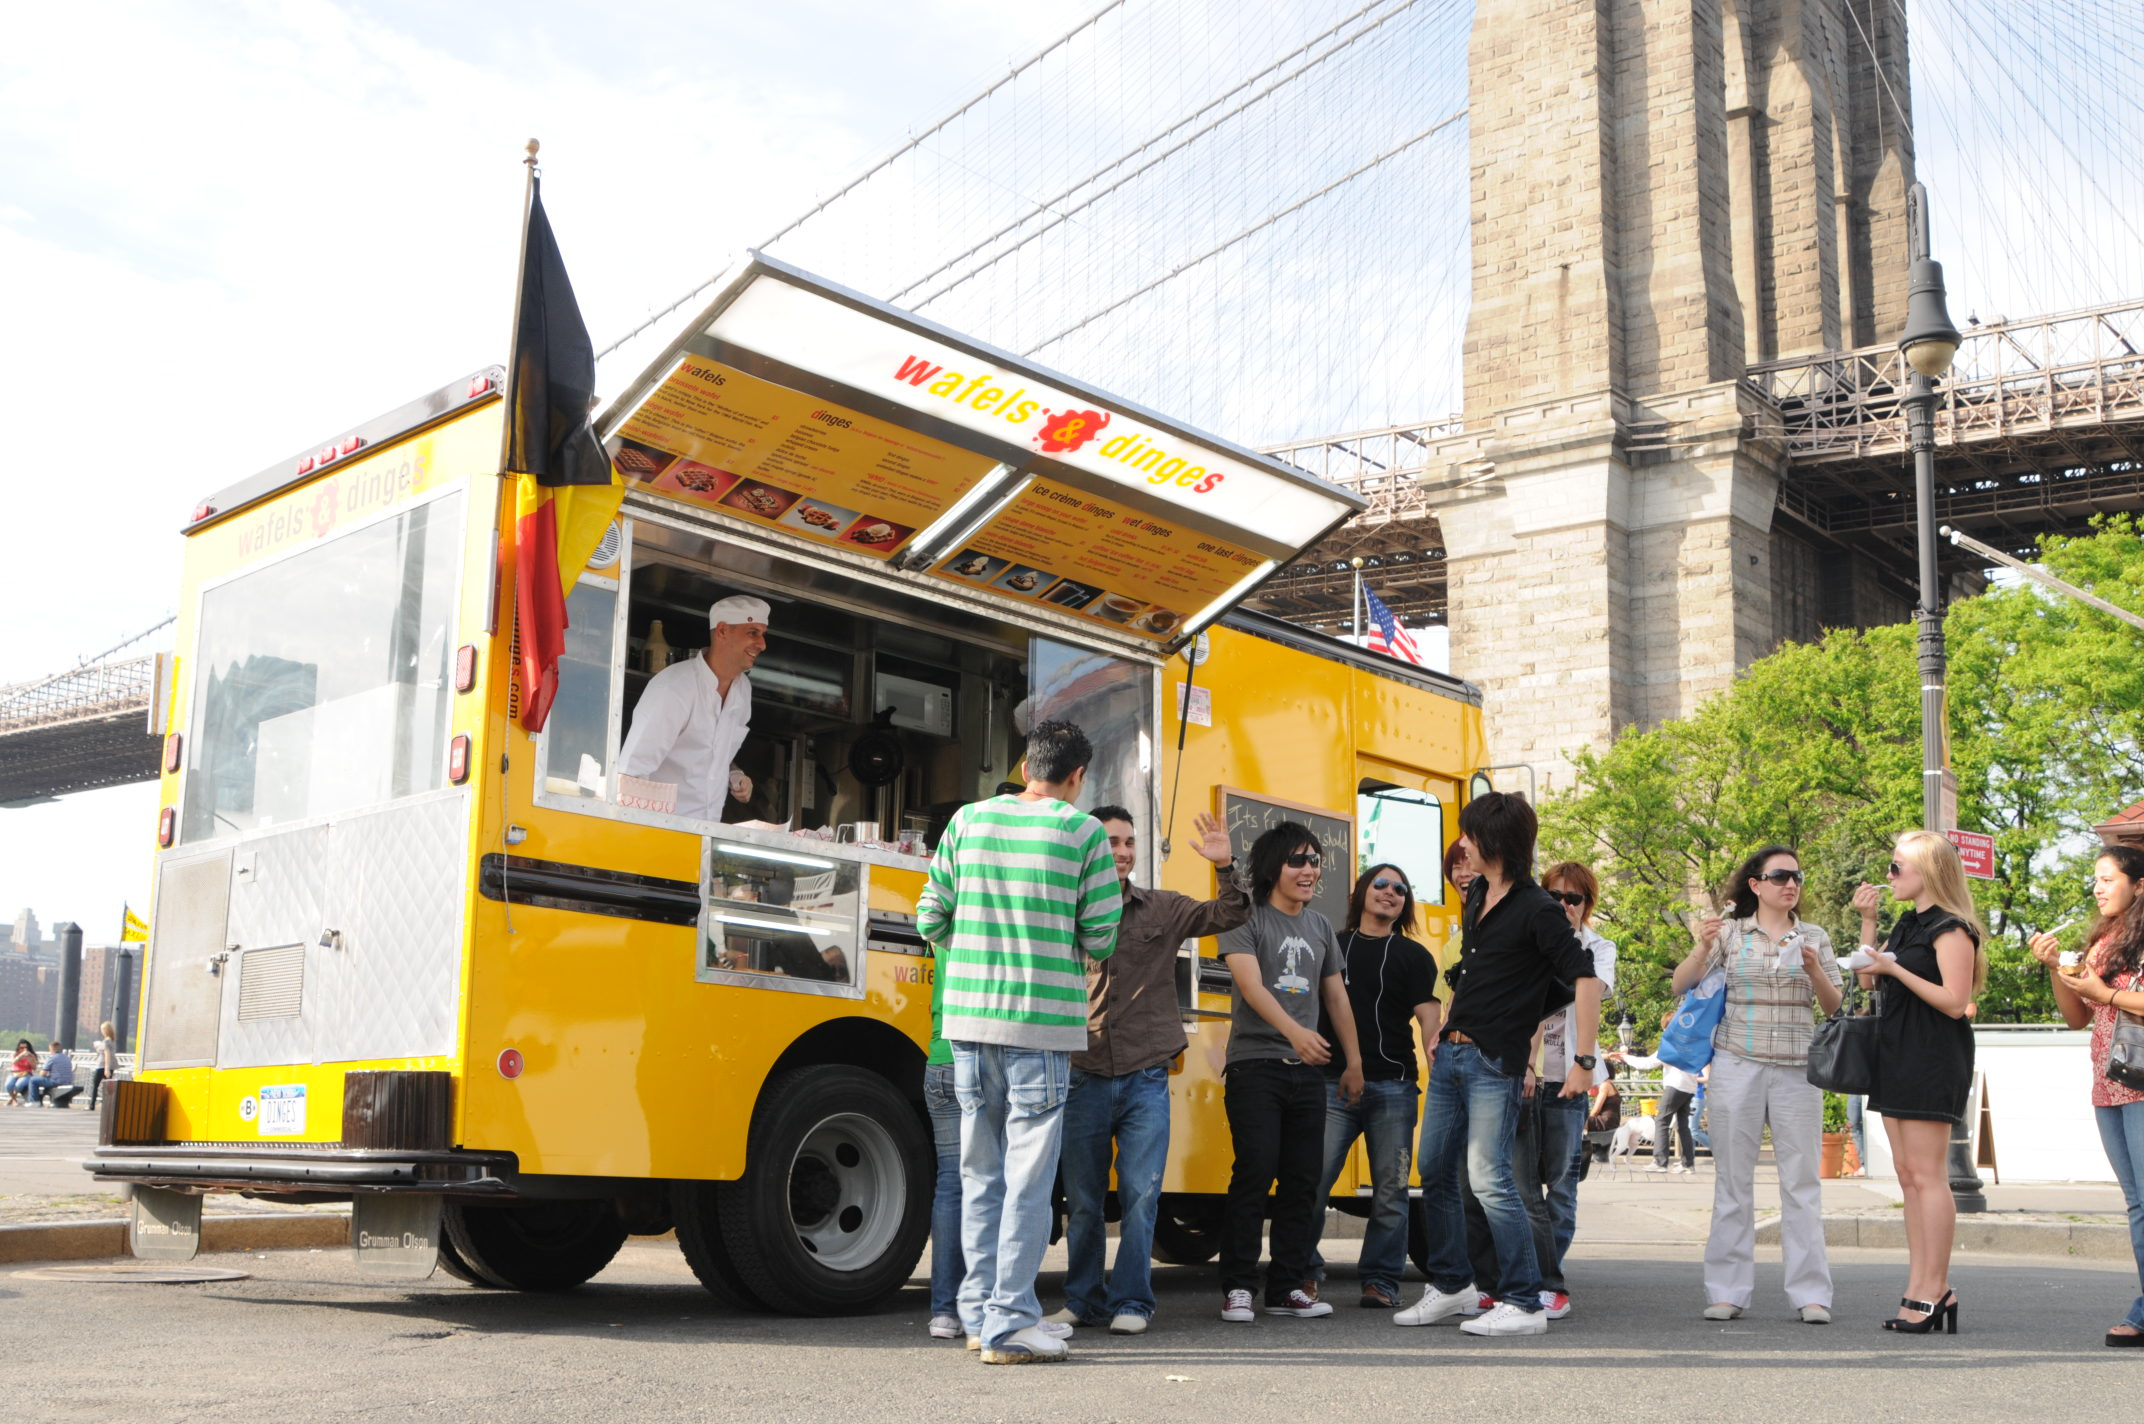 Image result for Wafels & Dinges food truck nyc